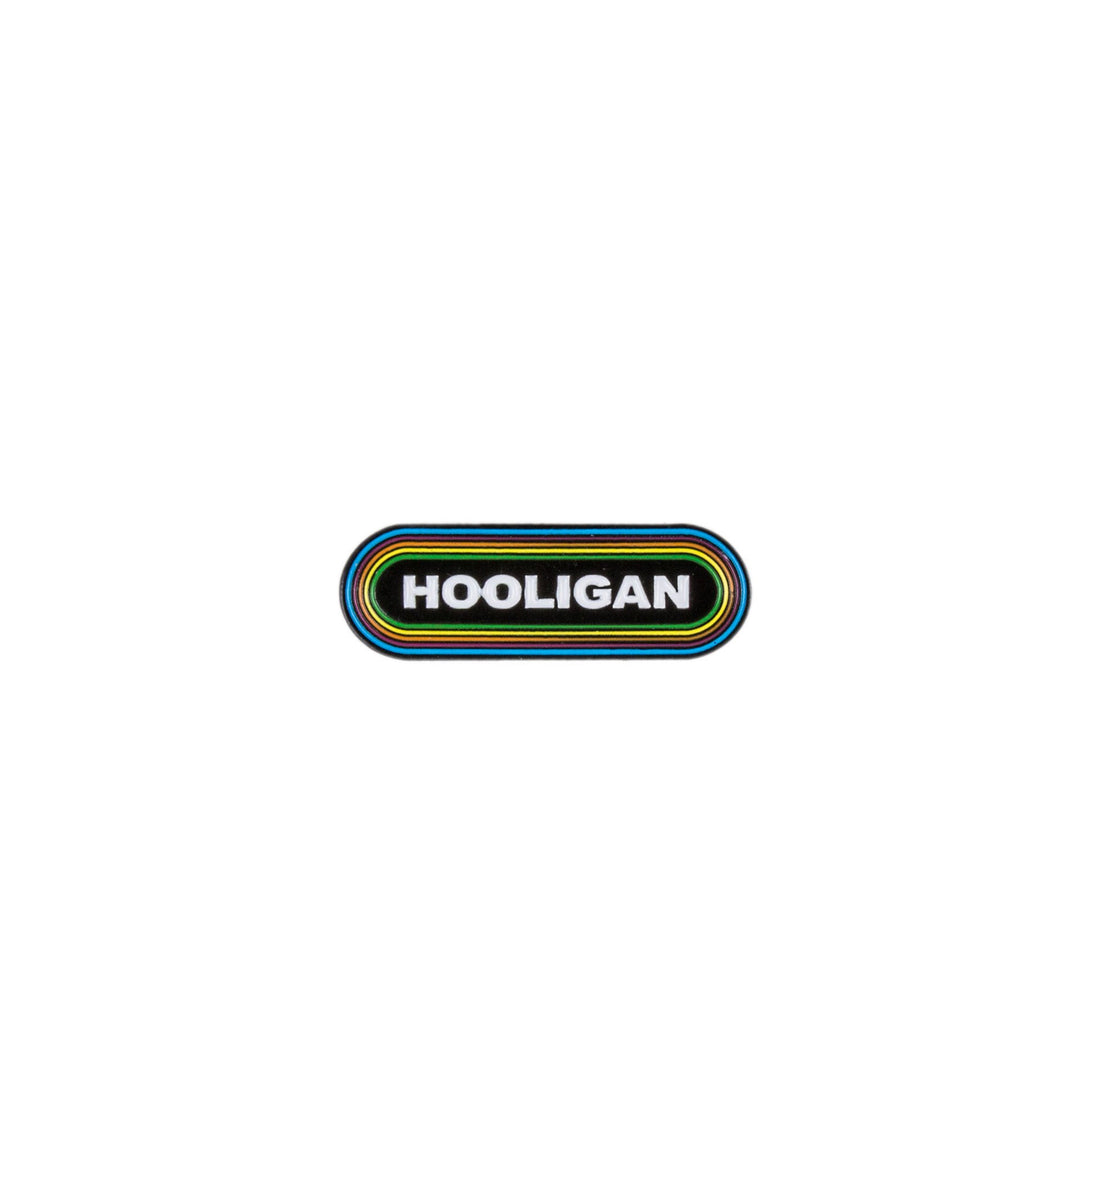 Hooligan Enamel Pin - Stickers/Pins/Patches - Iron and Resin